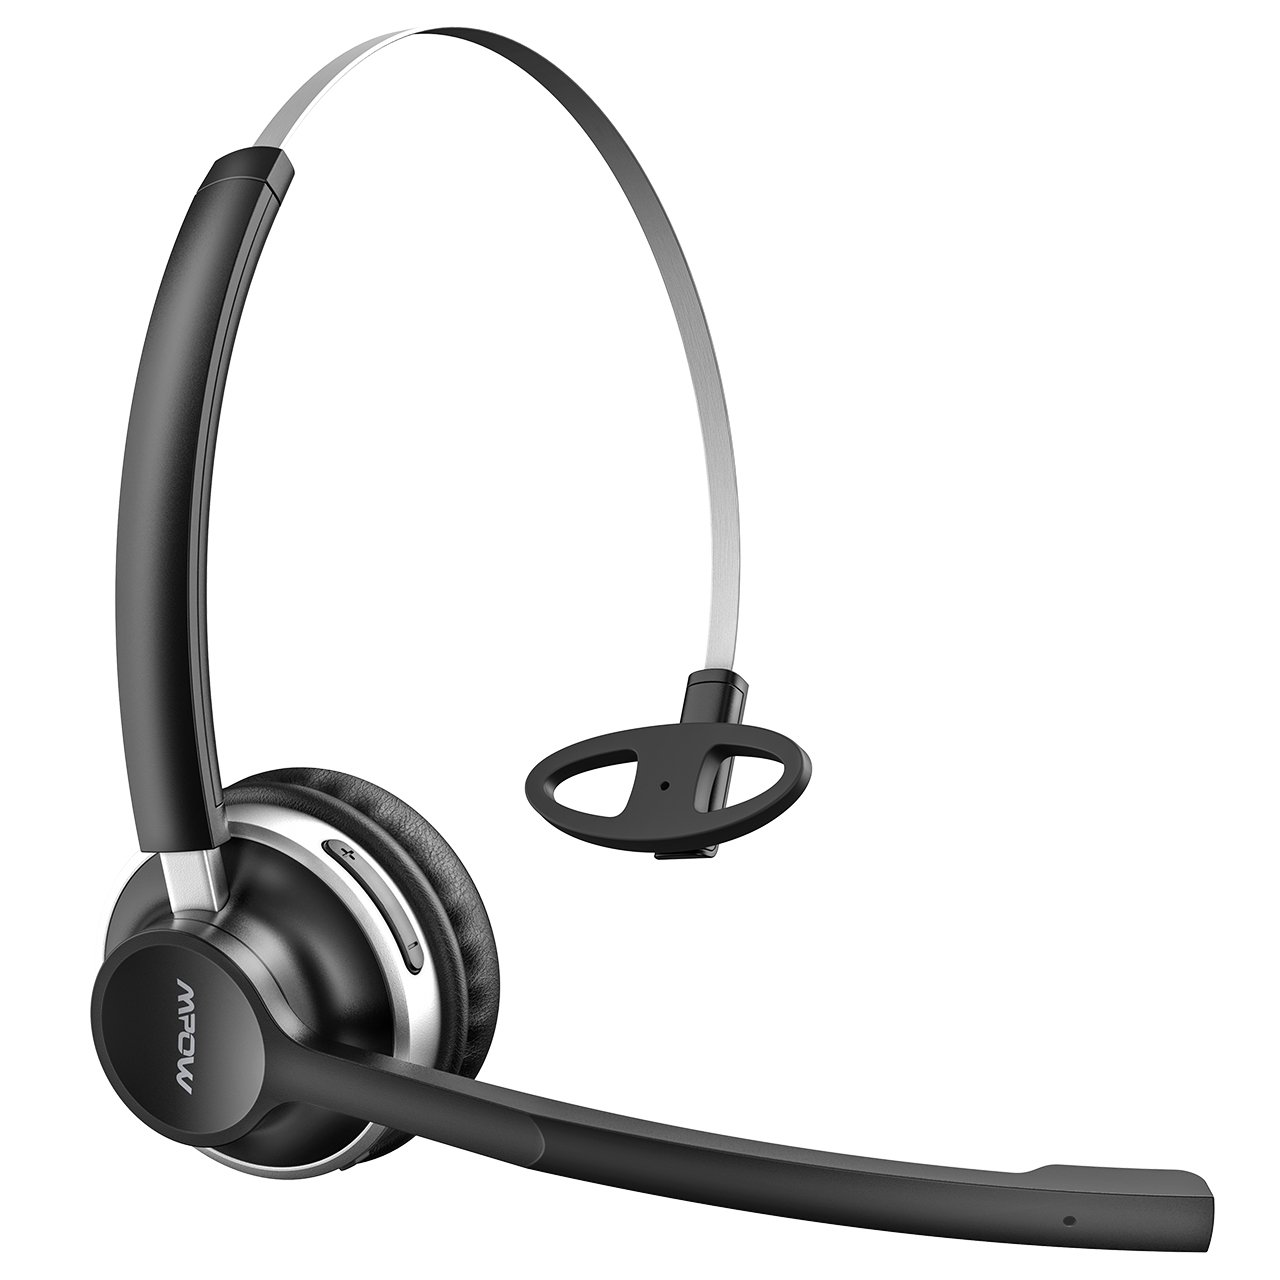 13Hr Playtime Trucker Bluetooth Headset w//Wired Mode Dual-Mic Noise Reduction Mpow HC3 Bluetooth Headphones Cell Phone Headset Car Bluetooth Headphone with Microphone for Driver//Skype//Call Center